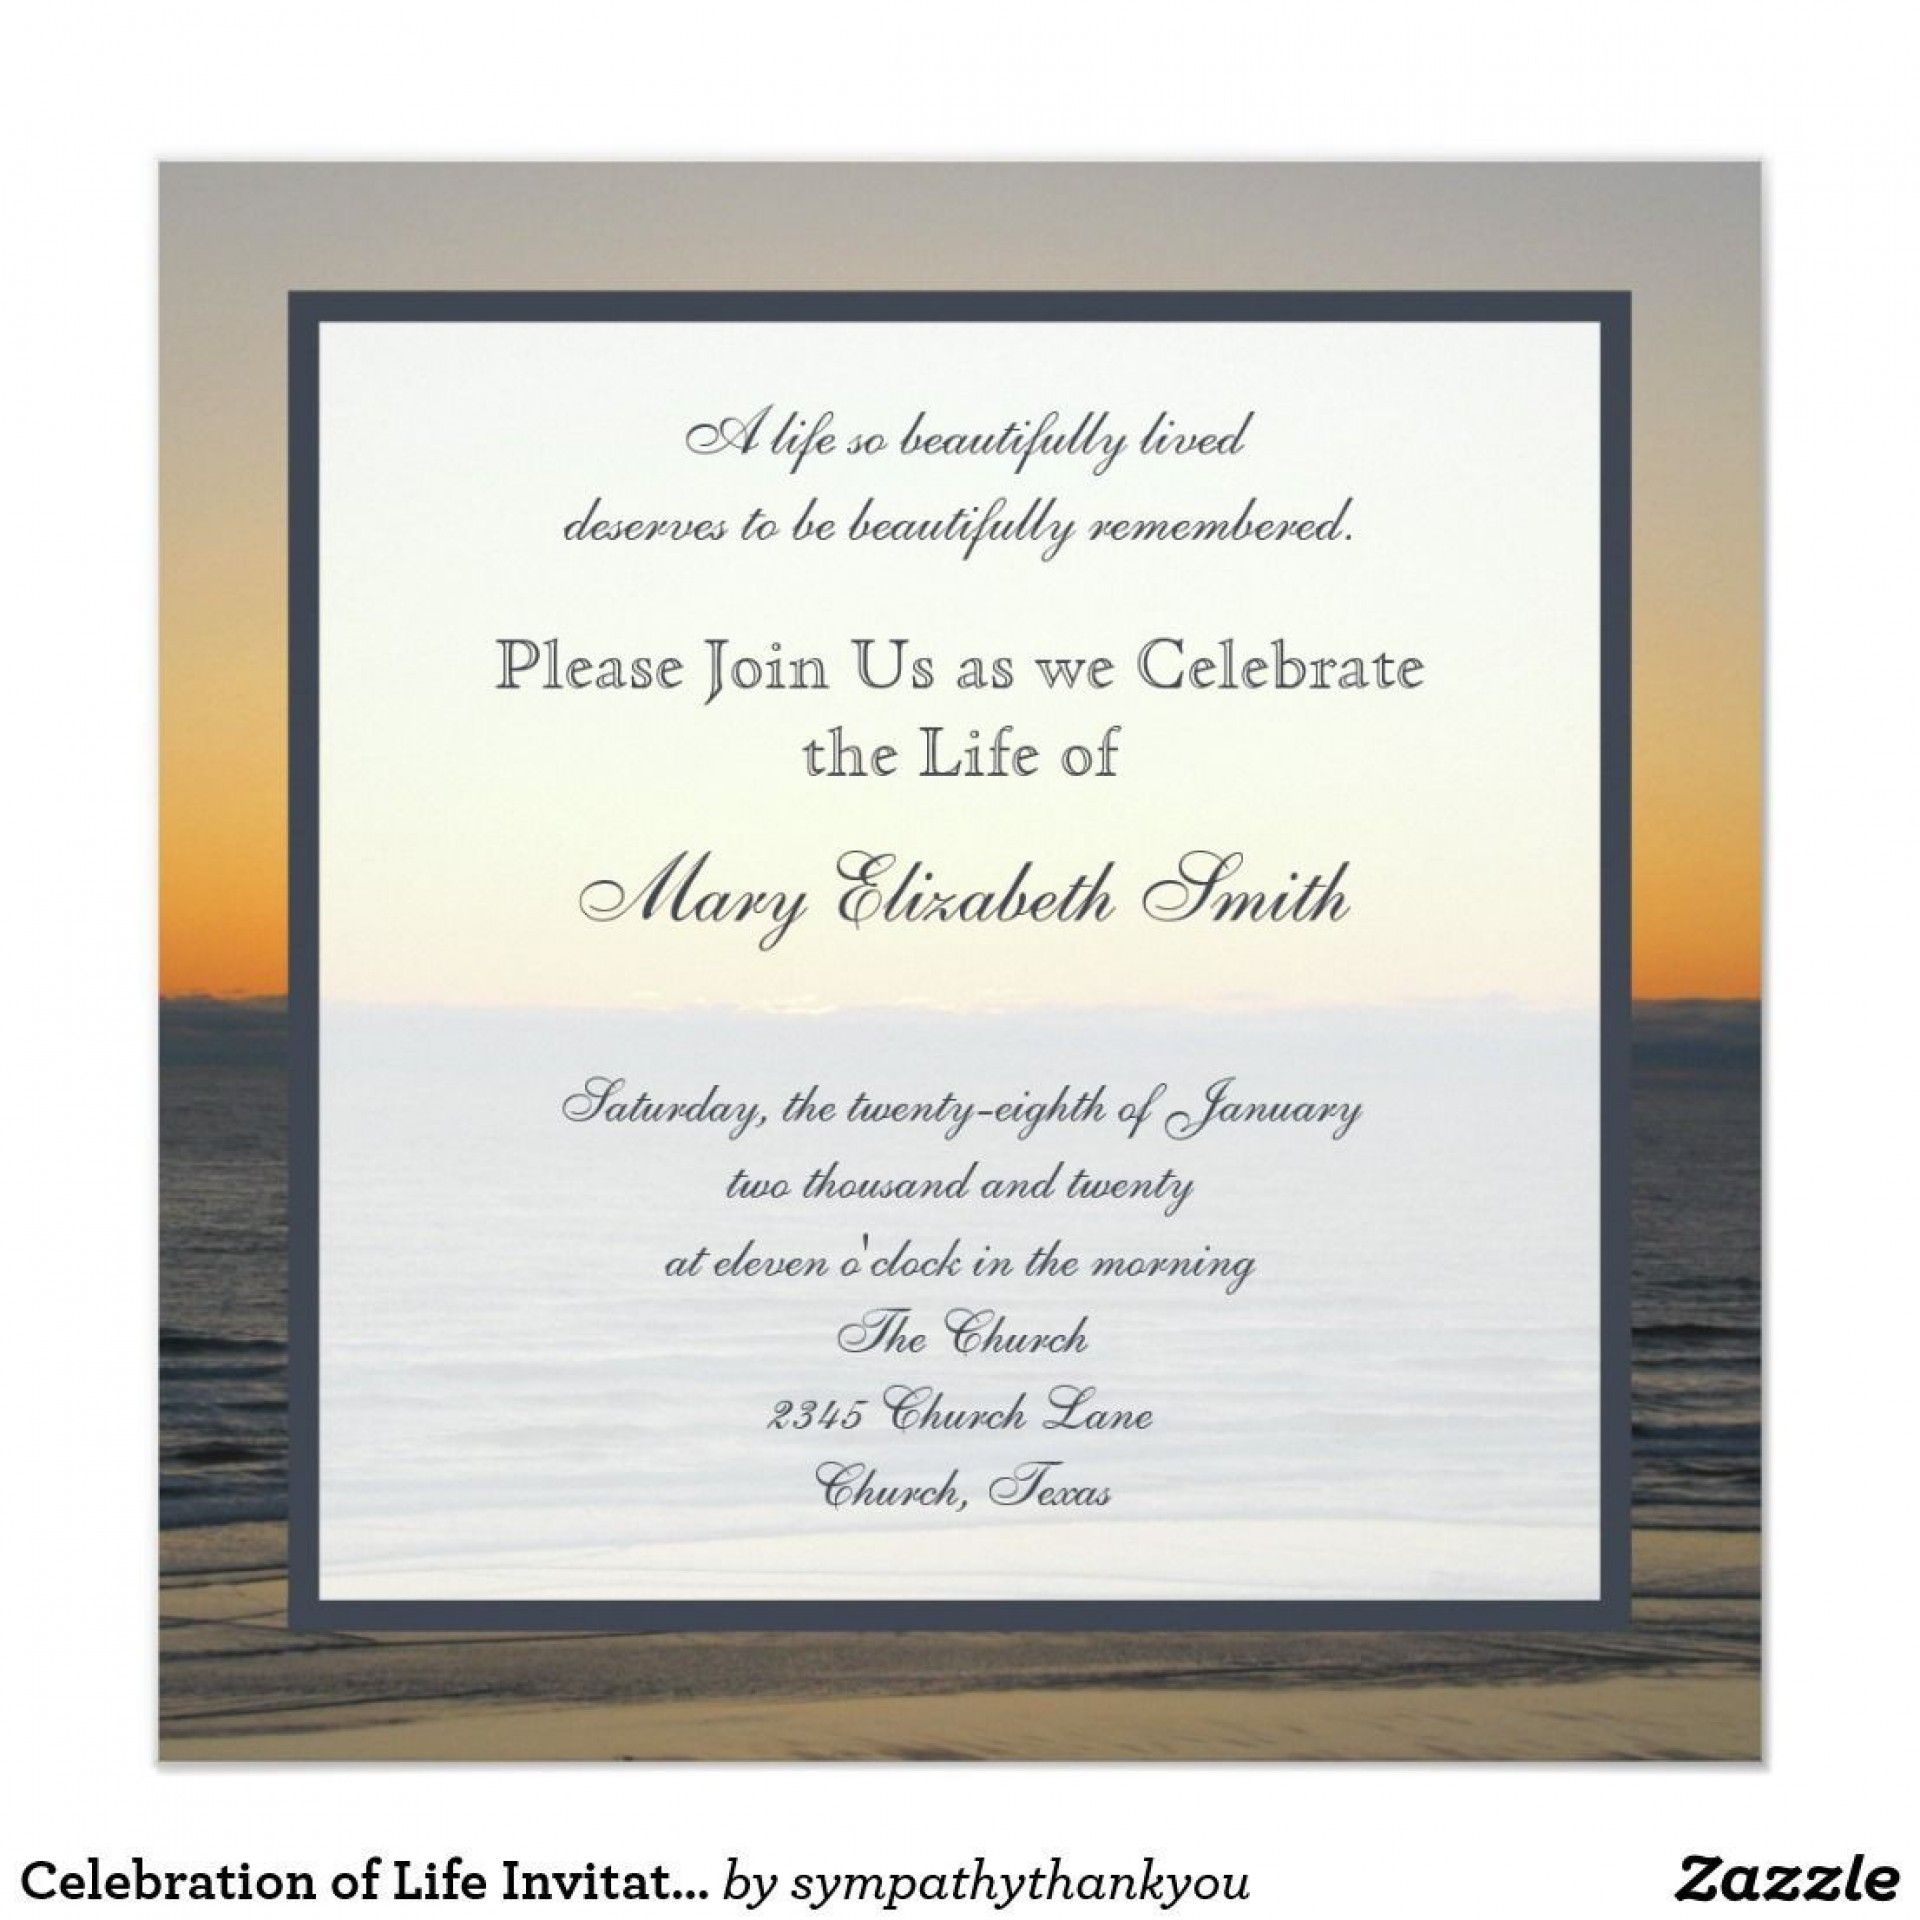 003 Simple Celebration Of Life Invitation Template Free High Def 1920